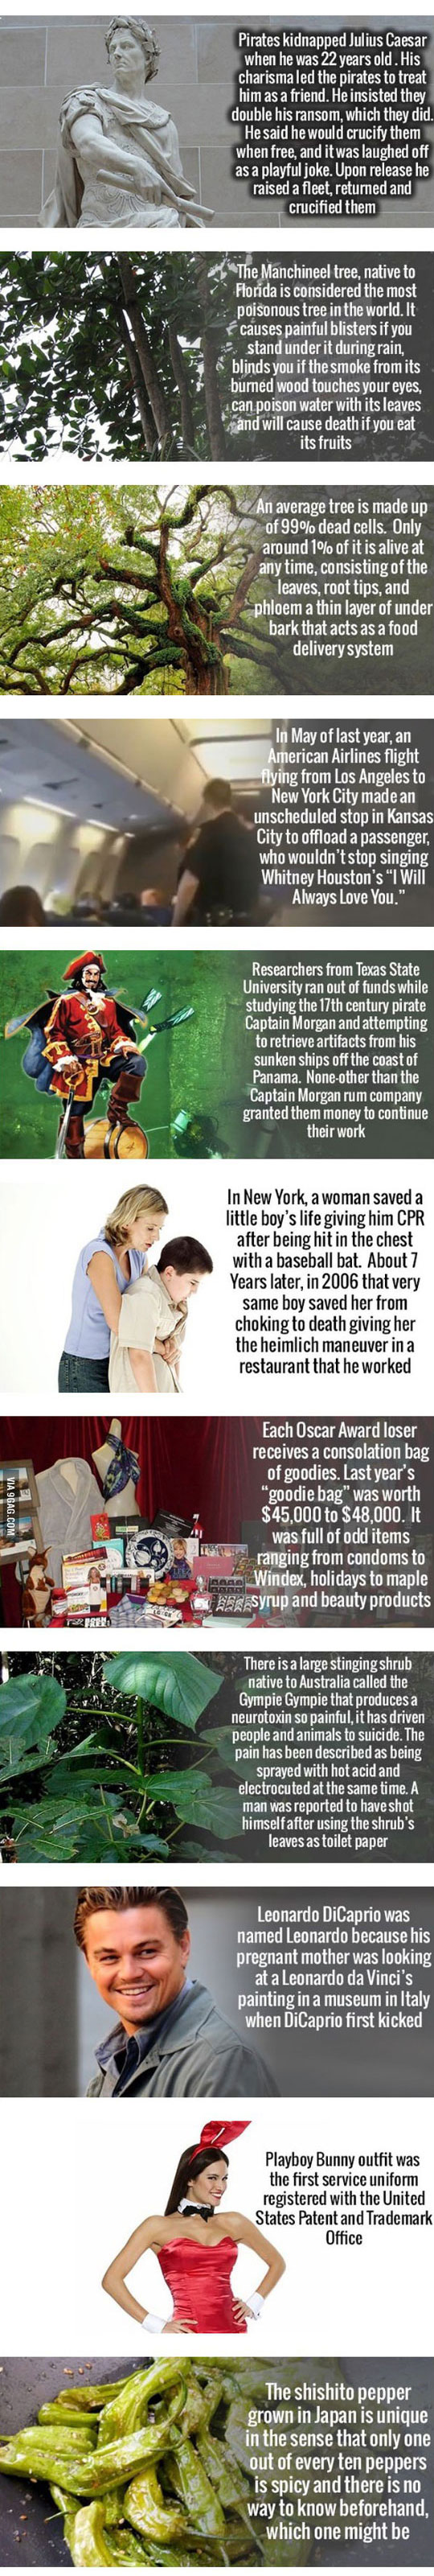 cool-history-facts-WWII-CPR-life